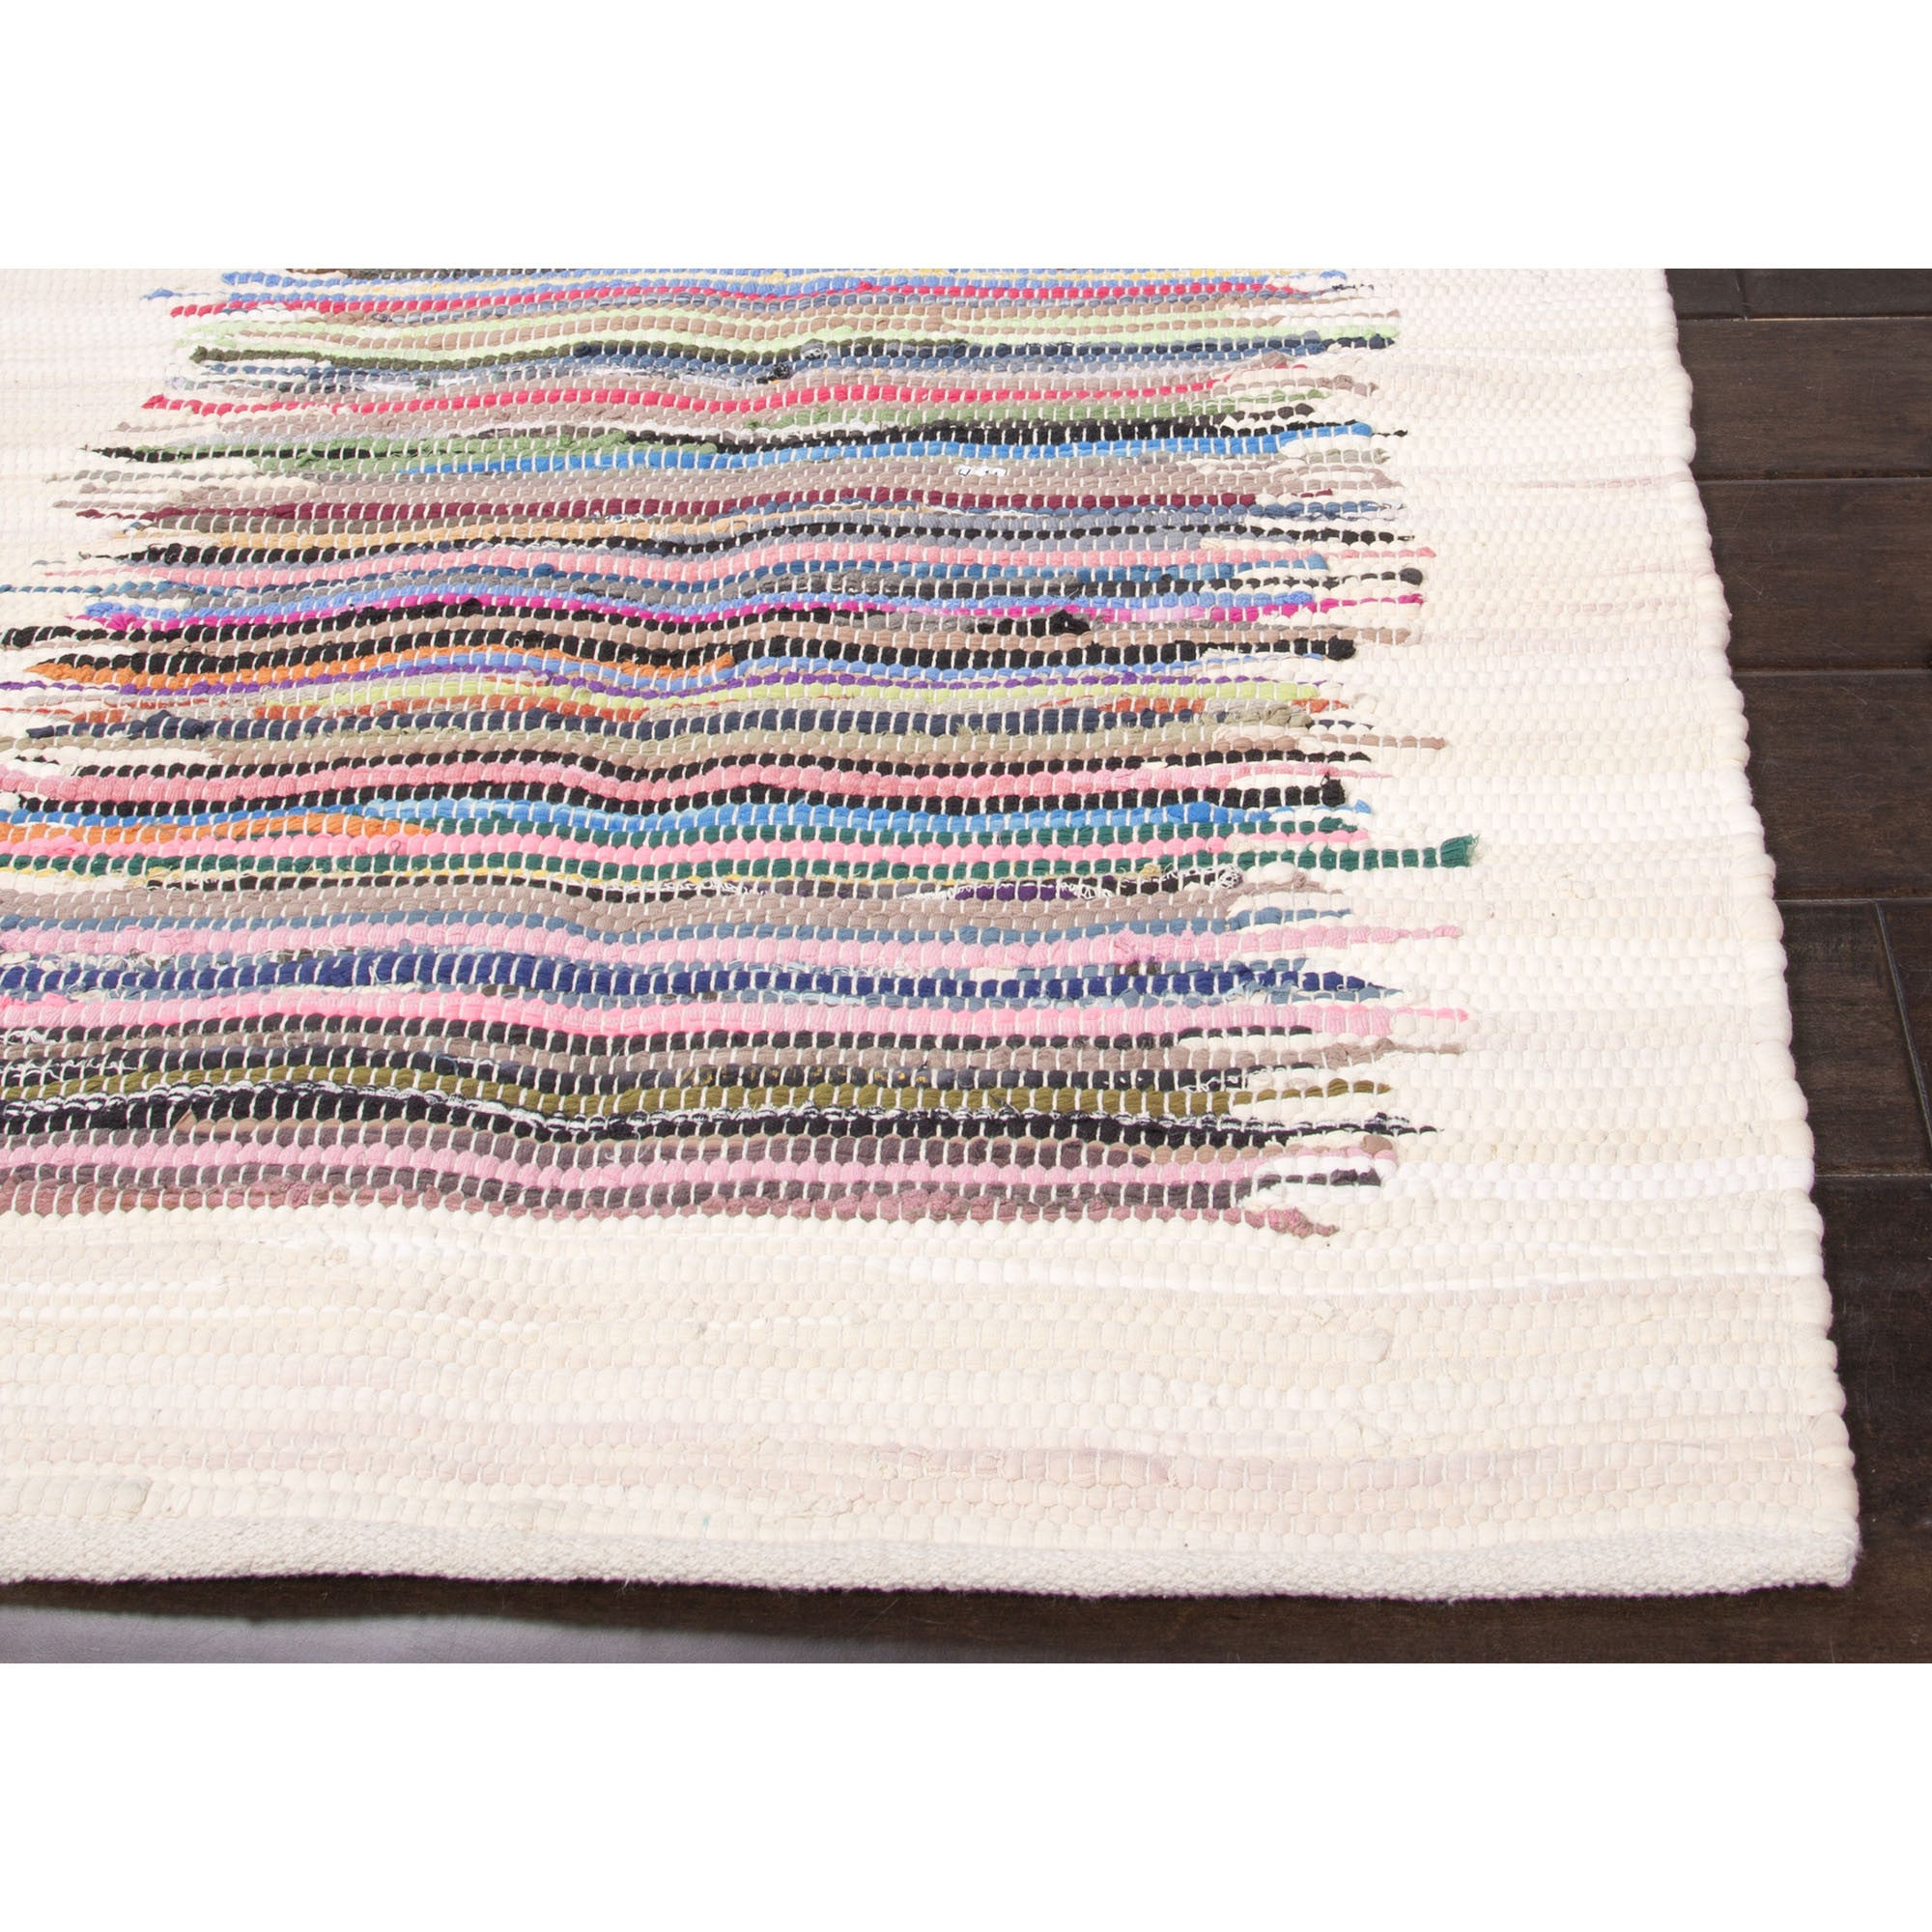 Jaipur Rugs Accent Stripe Pattern Multi Ivory Cotton Area